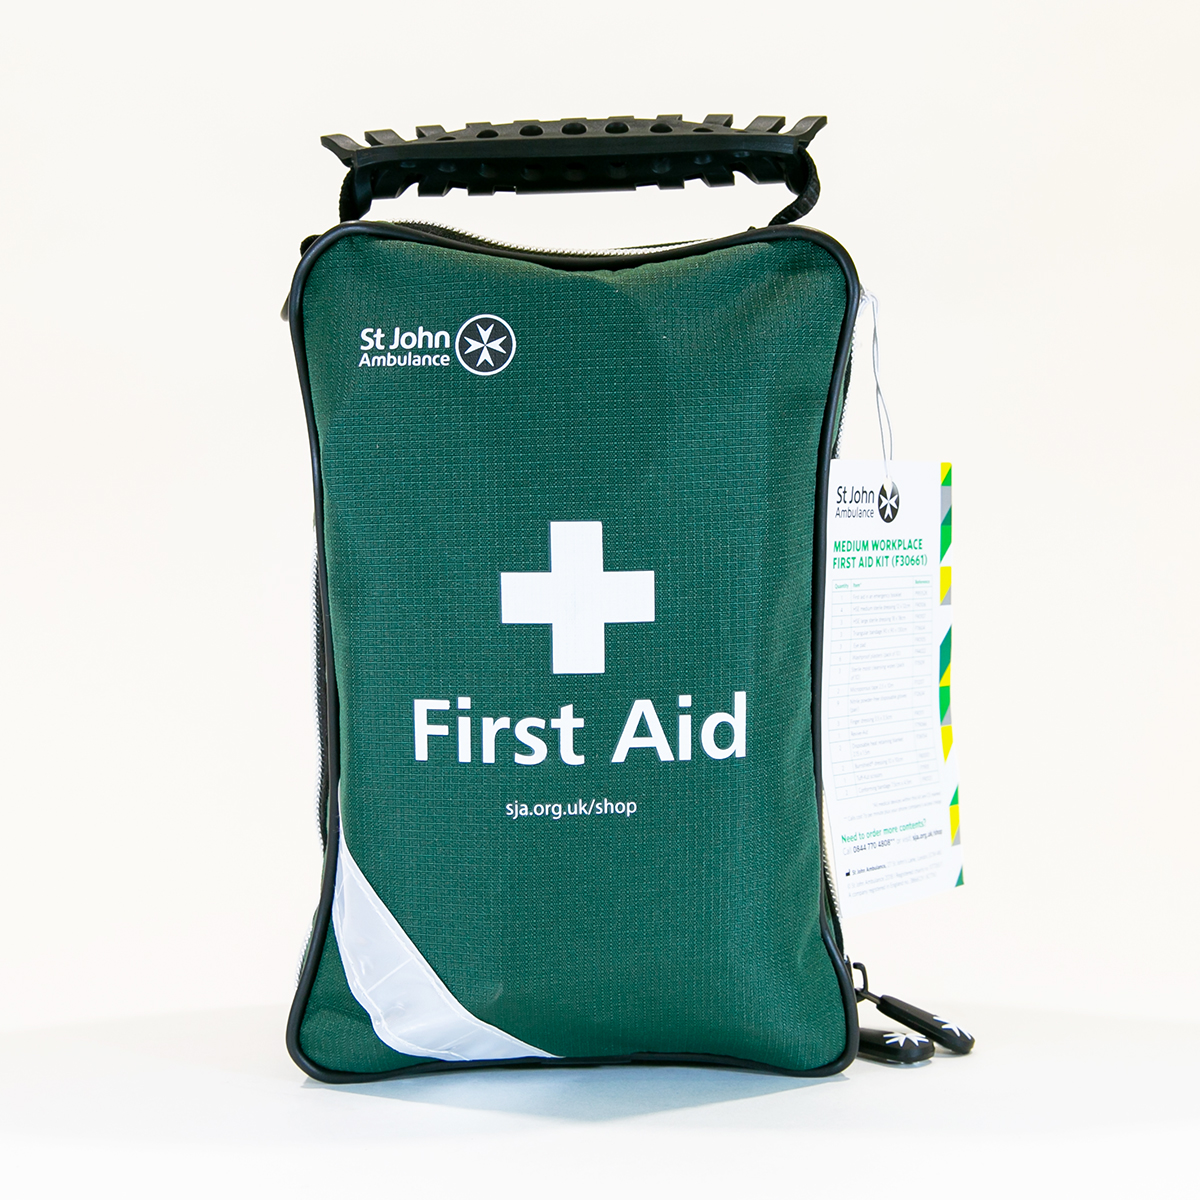 St John Ambulance Medium Zenith Workplace First Aid Kit BS 8599-1:2019